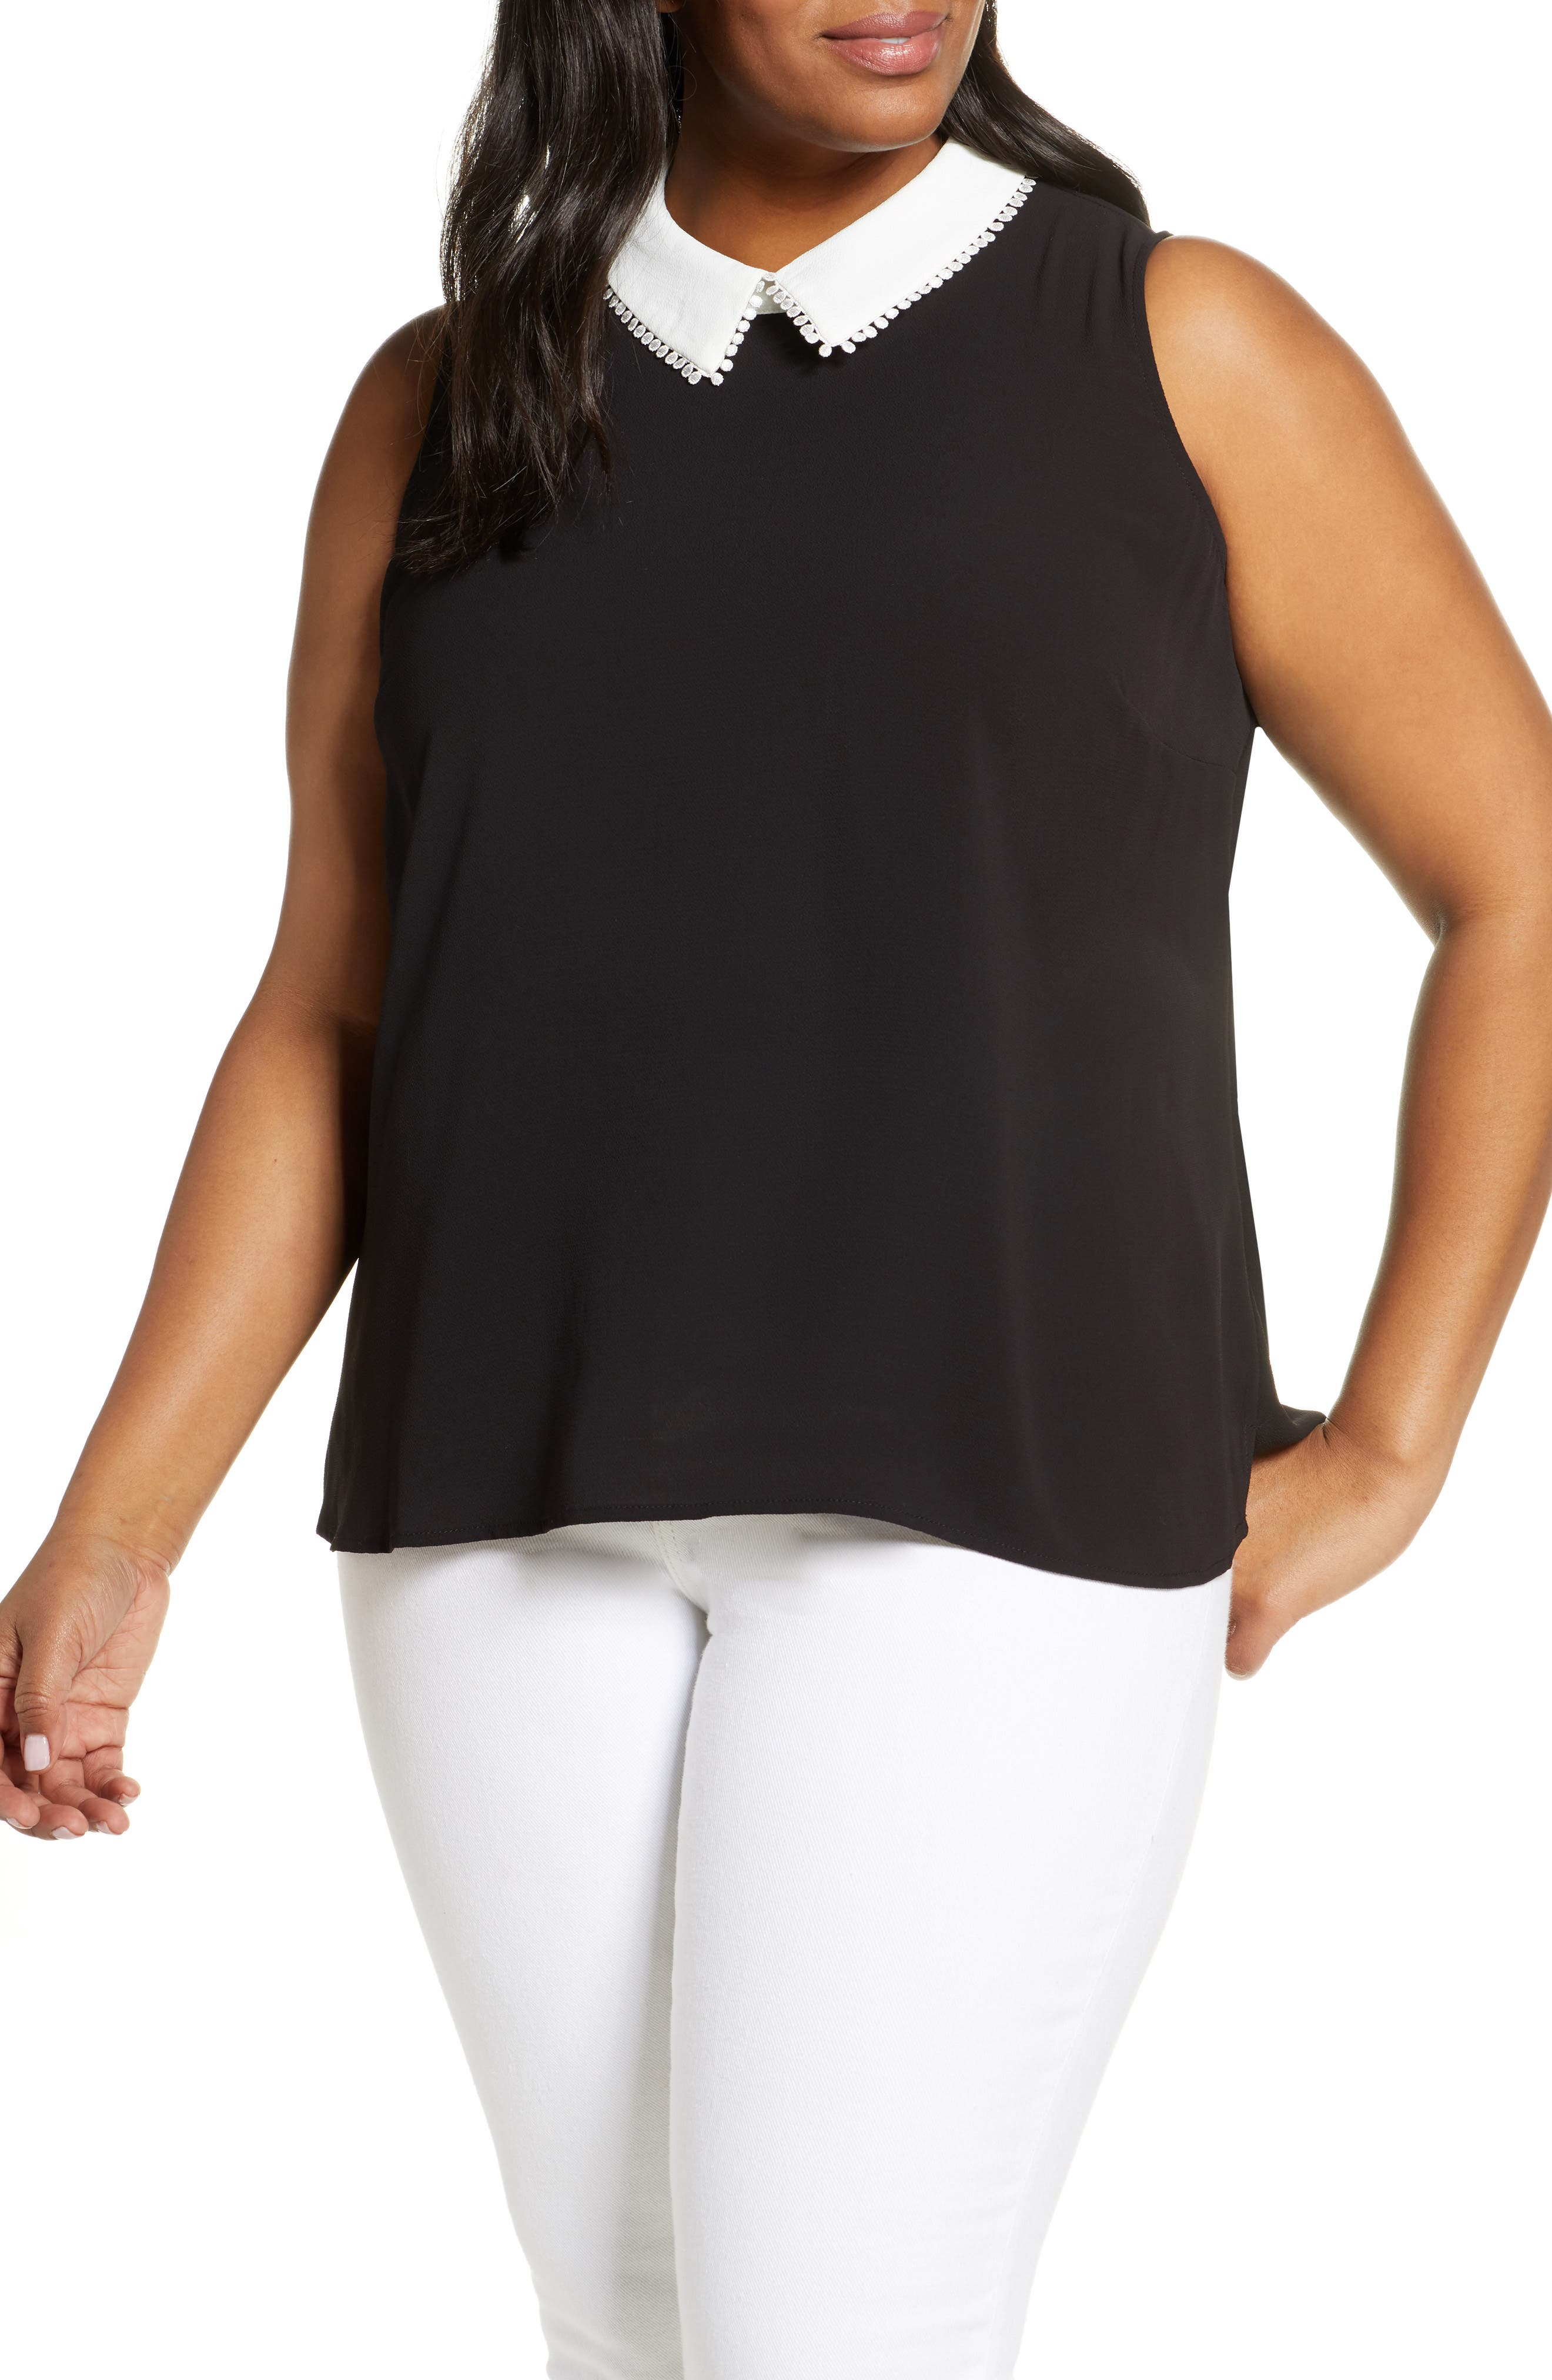 1950 Style Clothing- A Shopping Guide Plus Size Womens Cece Collared Sleeveless Top Size 2X - Black $69.00 AT vintagedancer.com